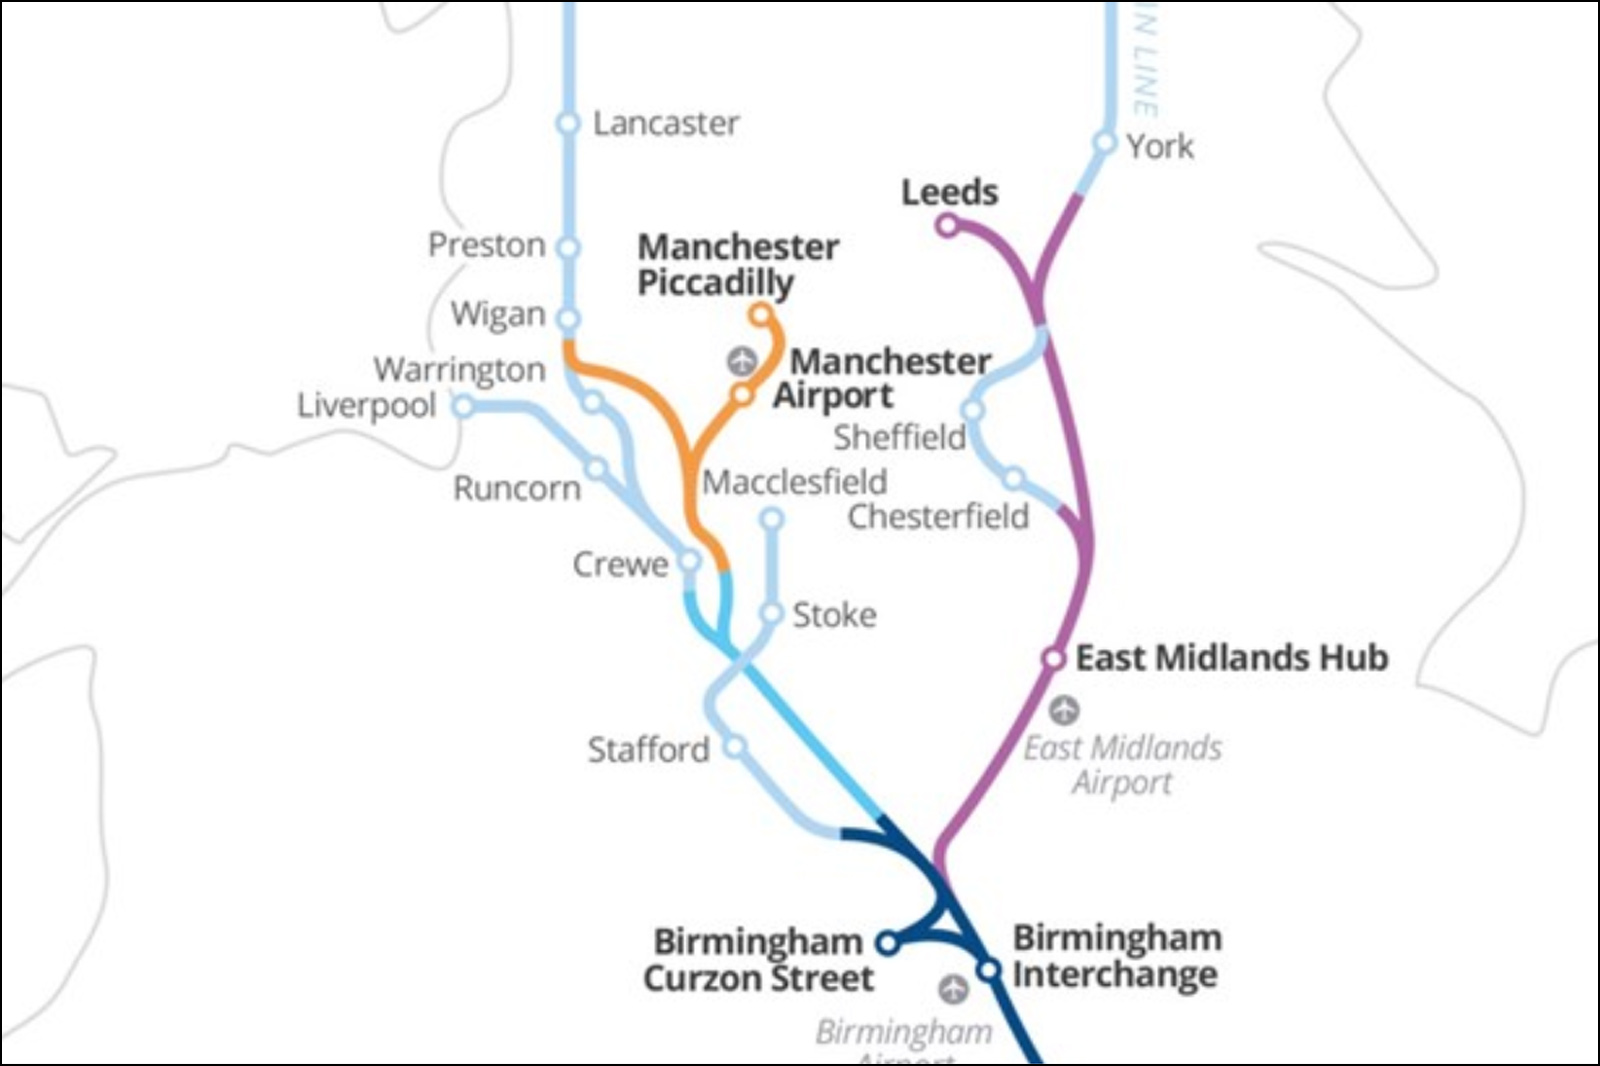 Manchester railway stations to expand with new HS2 proposals